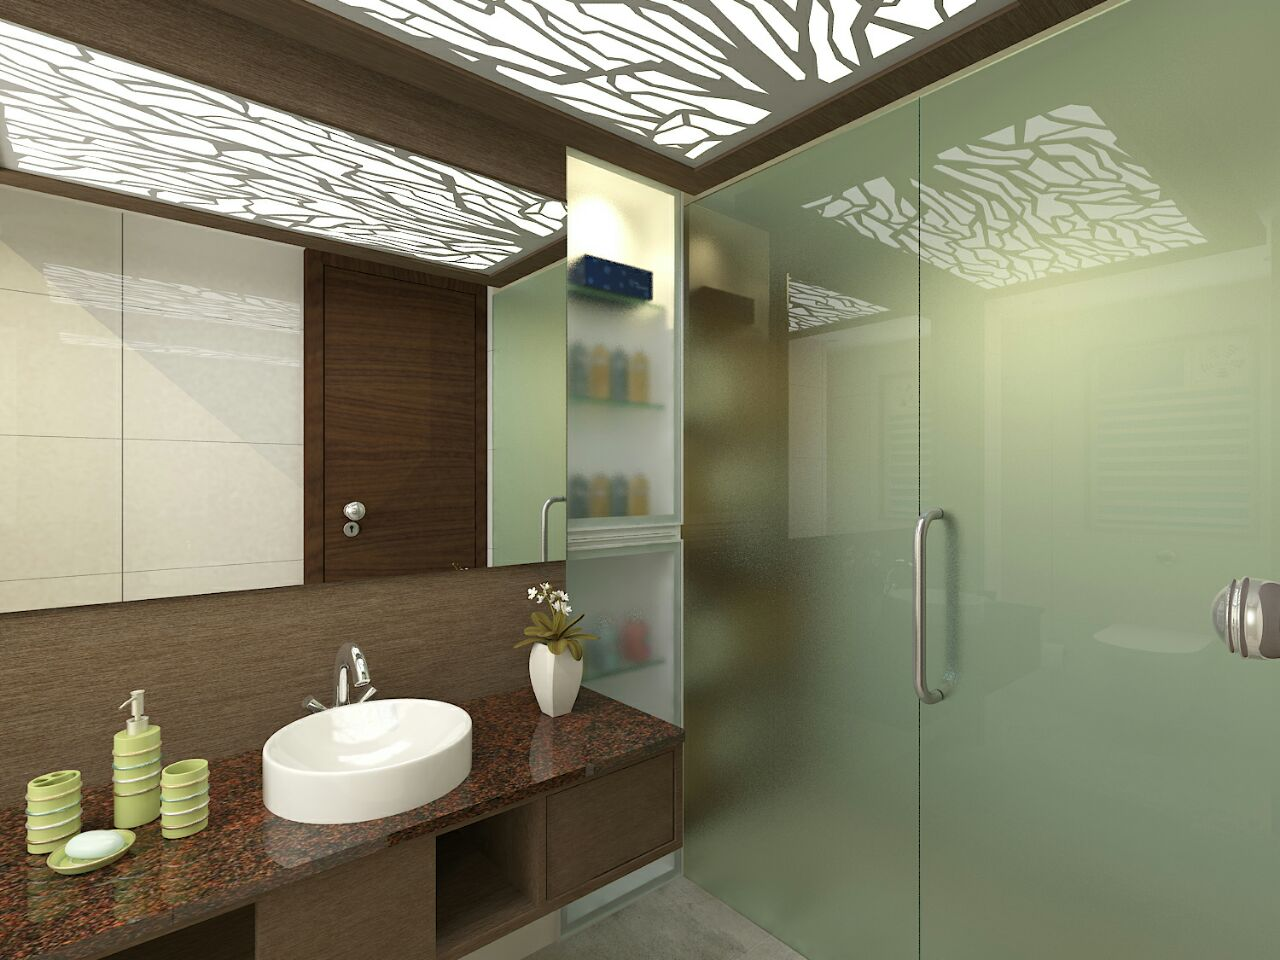 False Ceiling In Modern Bathroom by VERSATILE INTERIORS  Bathroom Modern | Interior Design Photos & Ideas